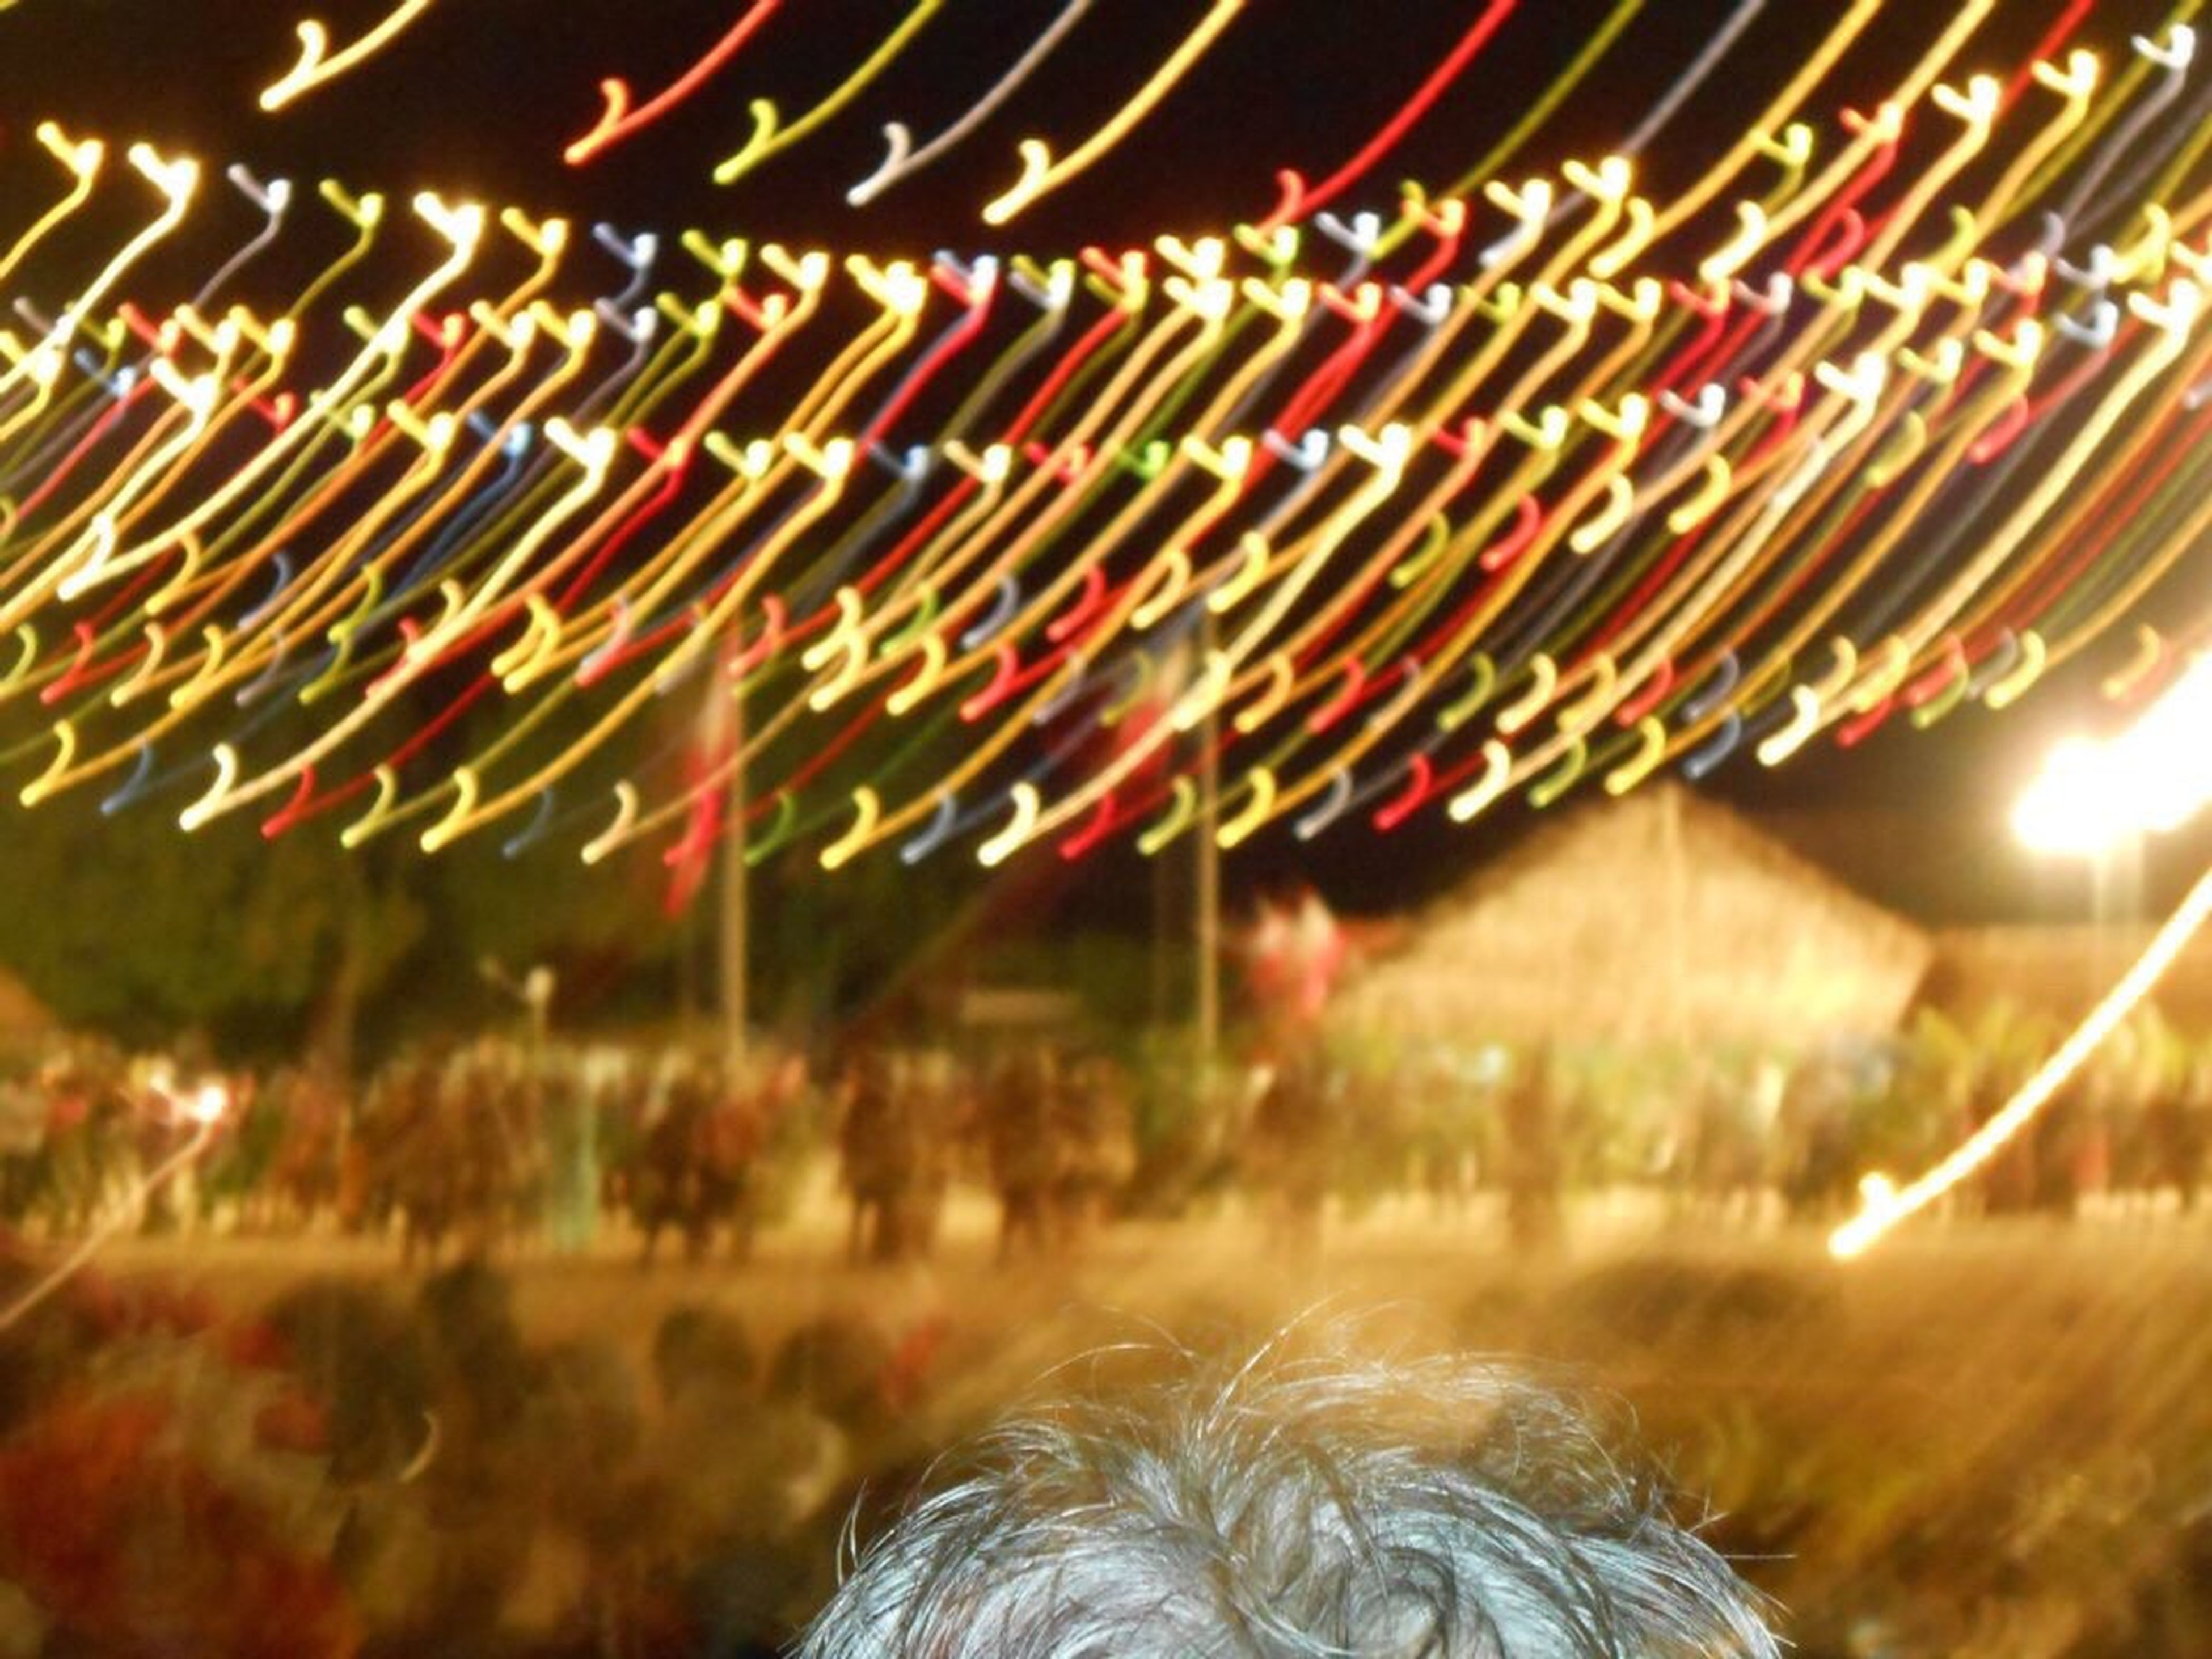 illuminated, night, multi colored, celebration, arts culture and entertainment, motion, long exposure, glowing, selective focus, decoration, outdoors, blurred motion, event, close-up, lighting equipment, no people, focus on foreground, pattern, green color, christmas lights